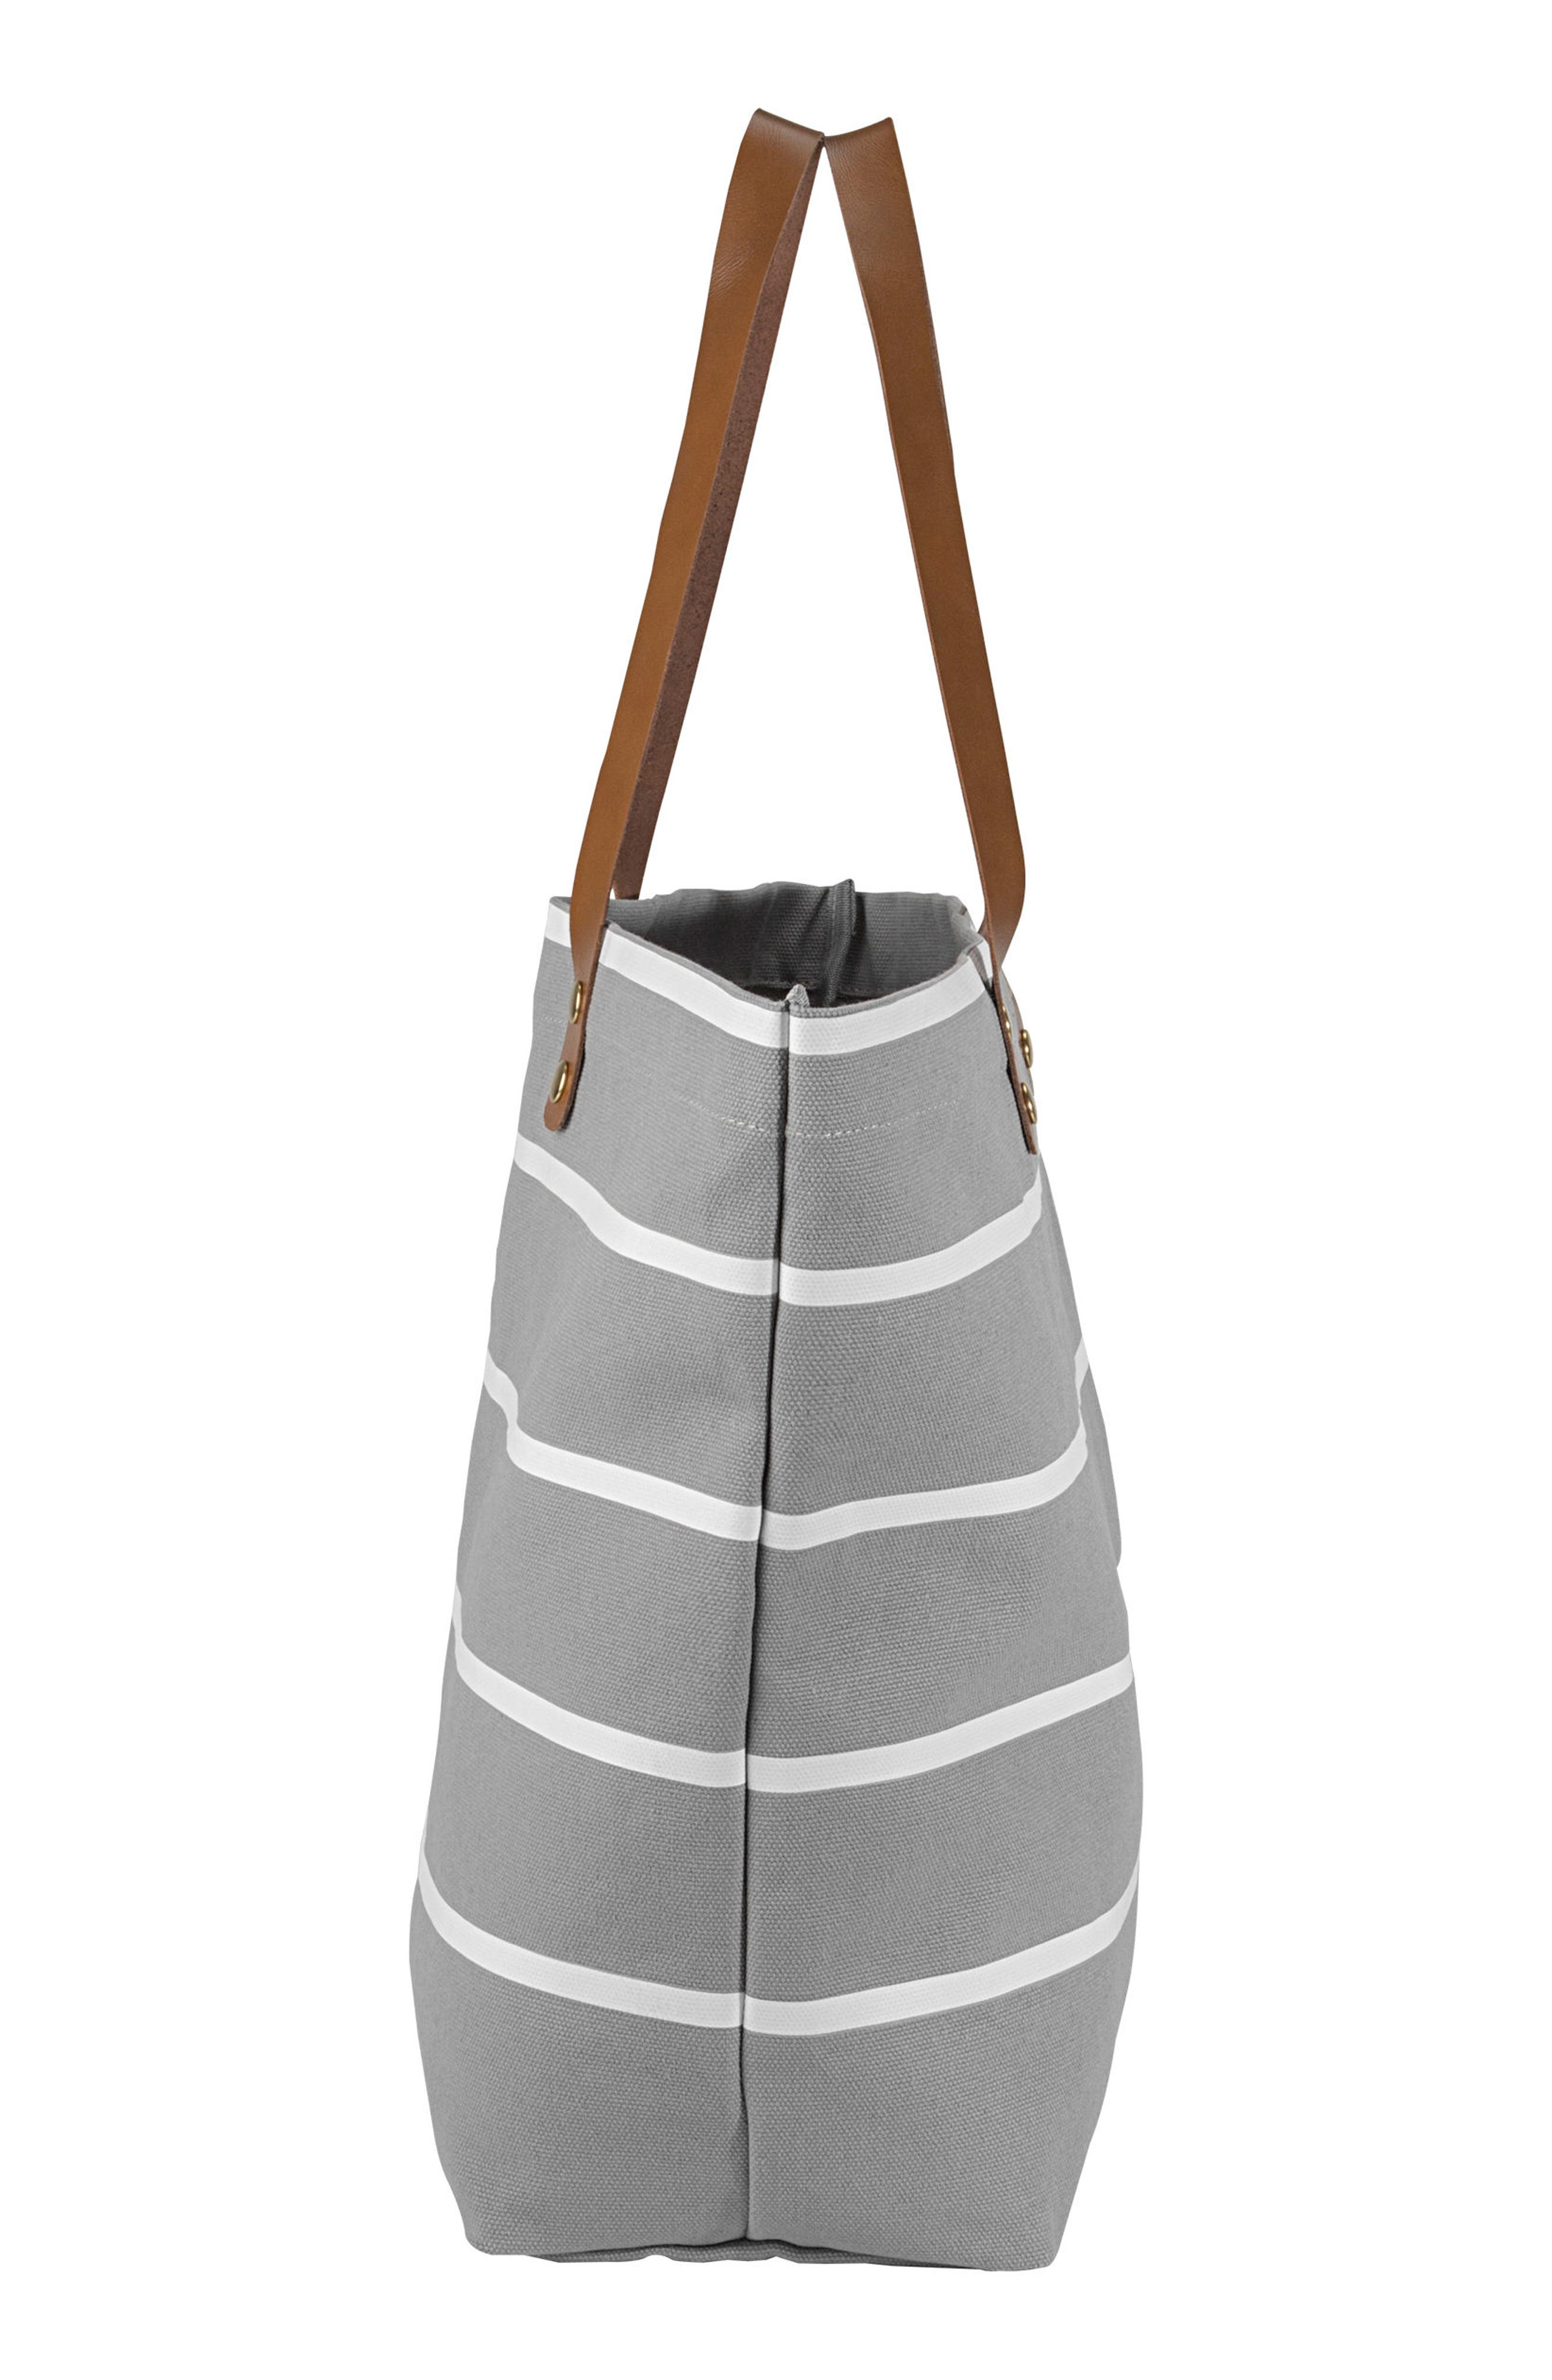 CATHY'S CONCEPTS, Monogram Large Canvas Tote, Alternate thumbnail 3, color, GREY